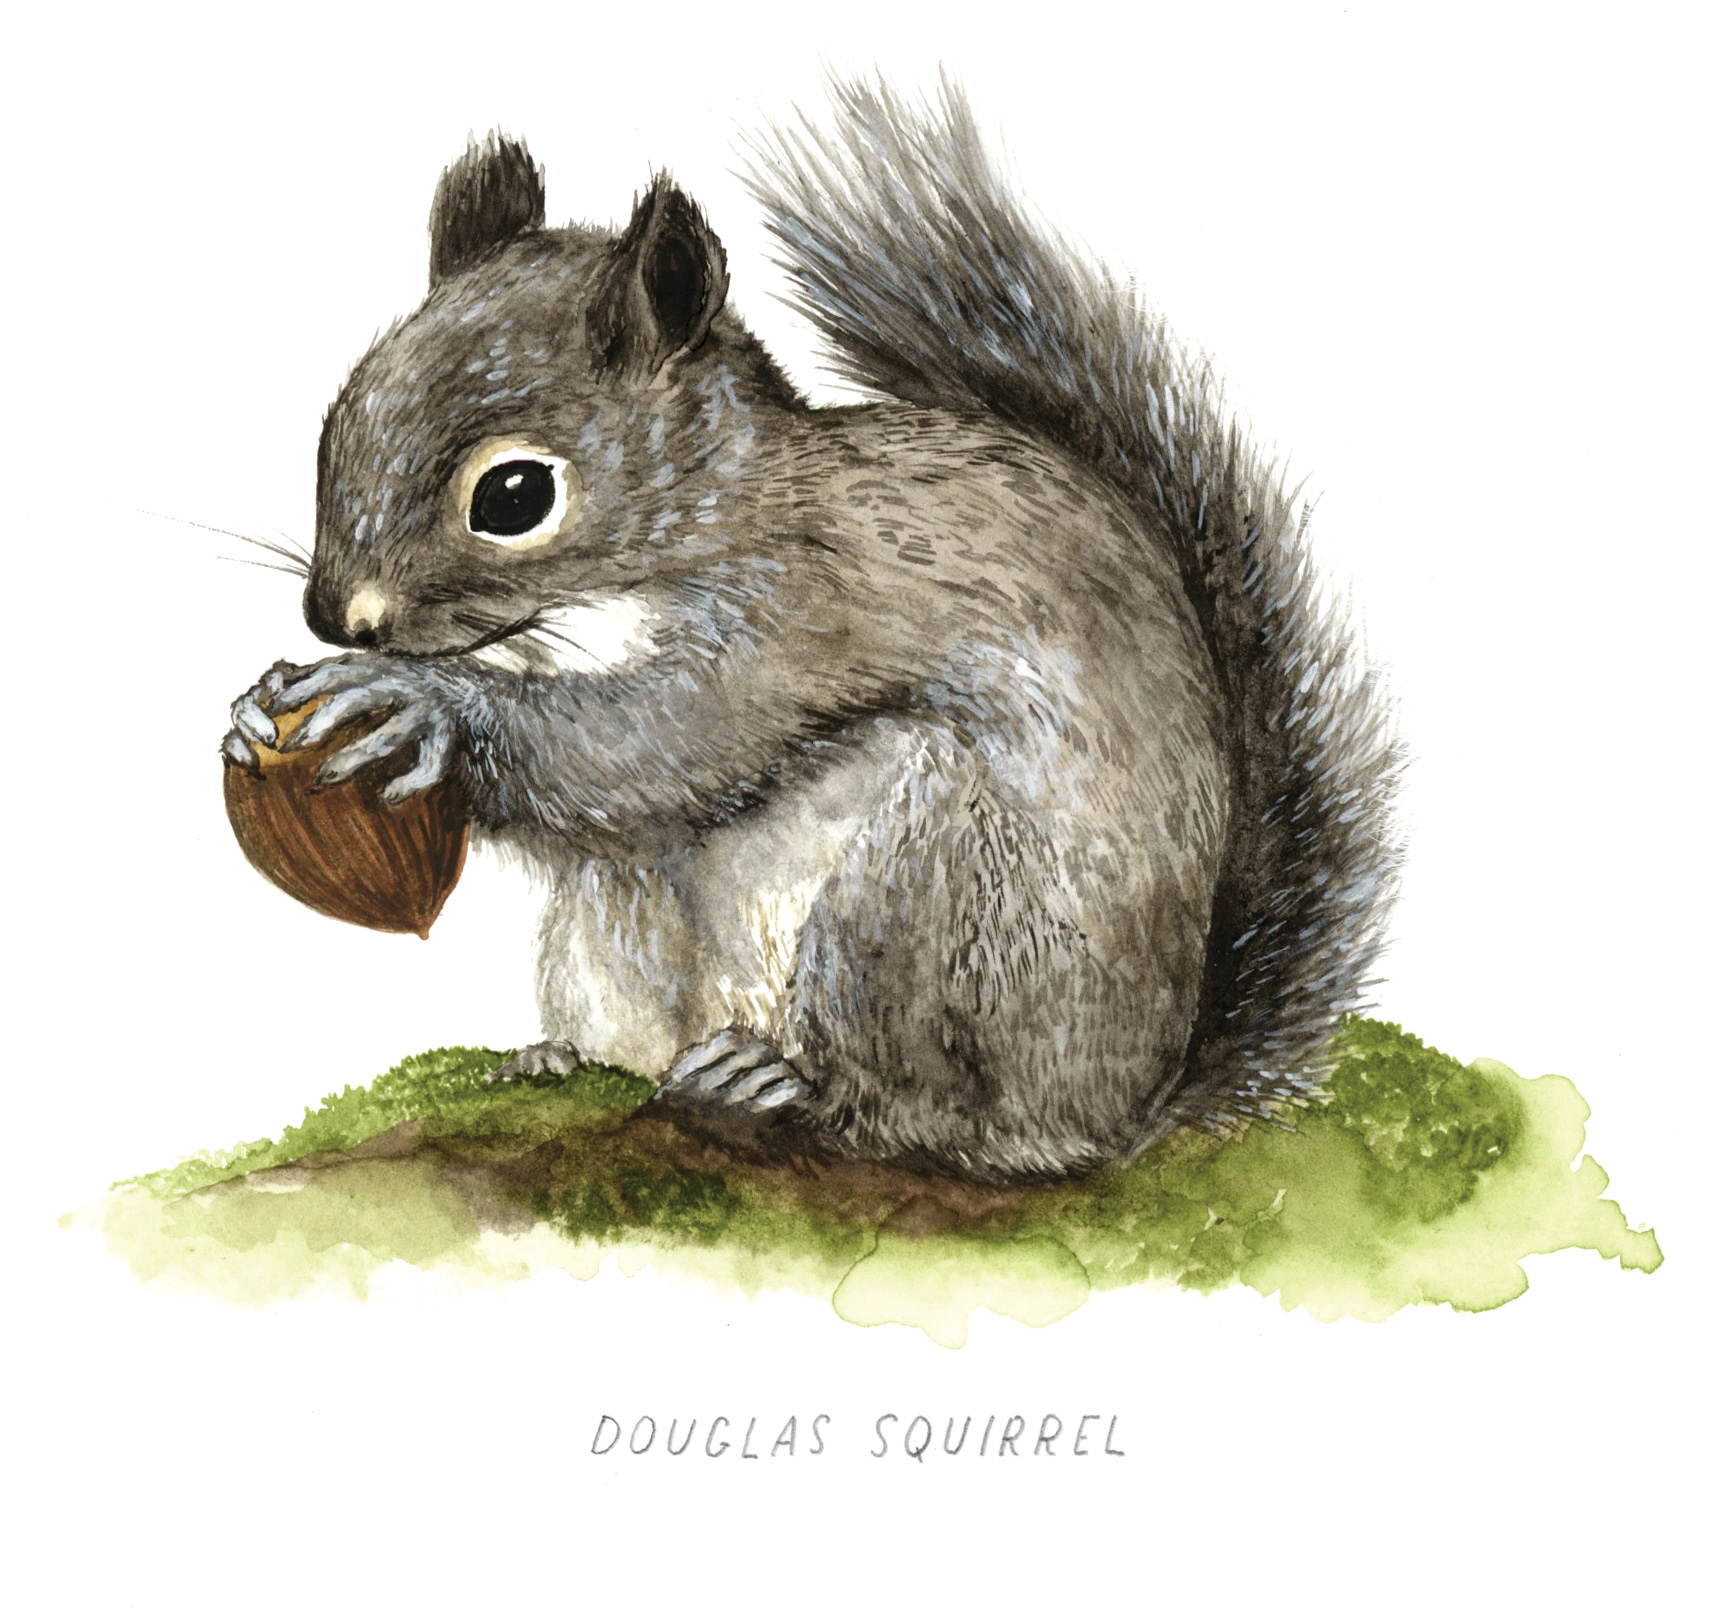 Squirrel illustration by Frida Clements, Ampersand Magazine